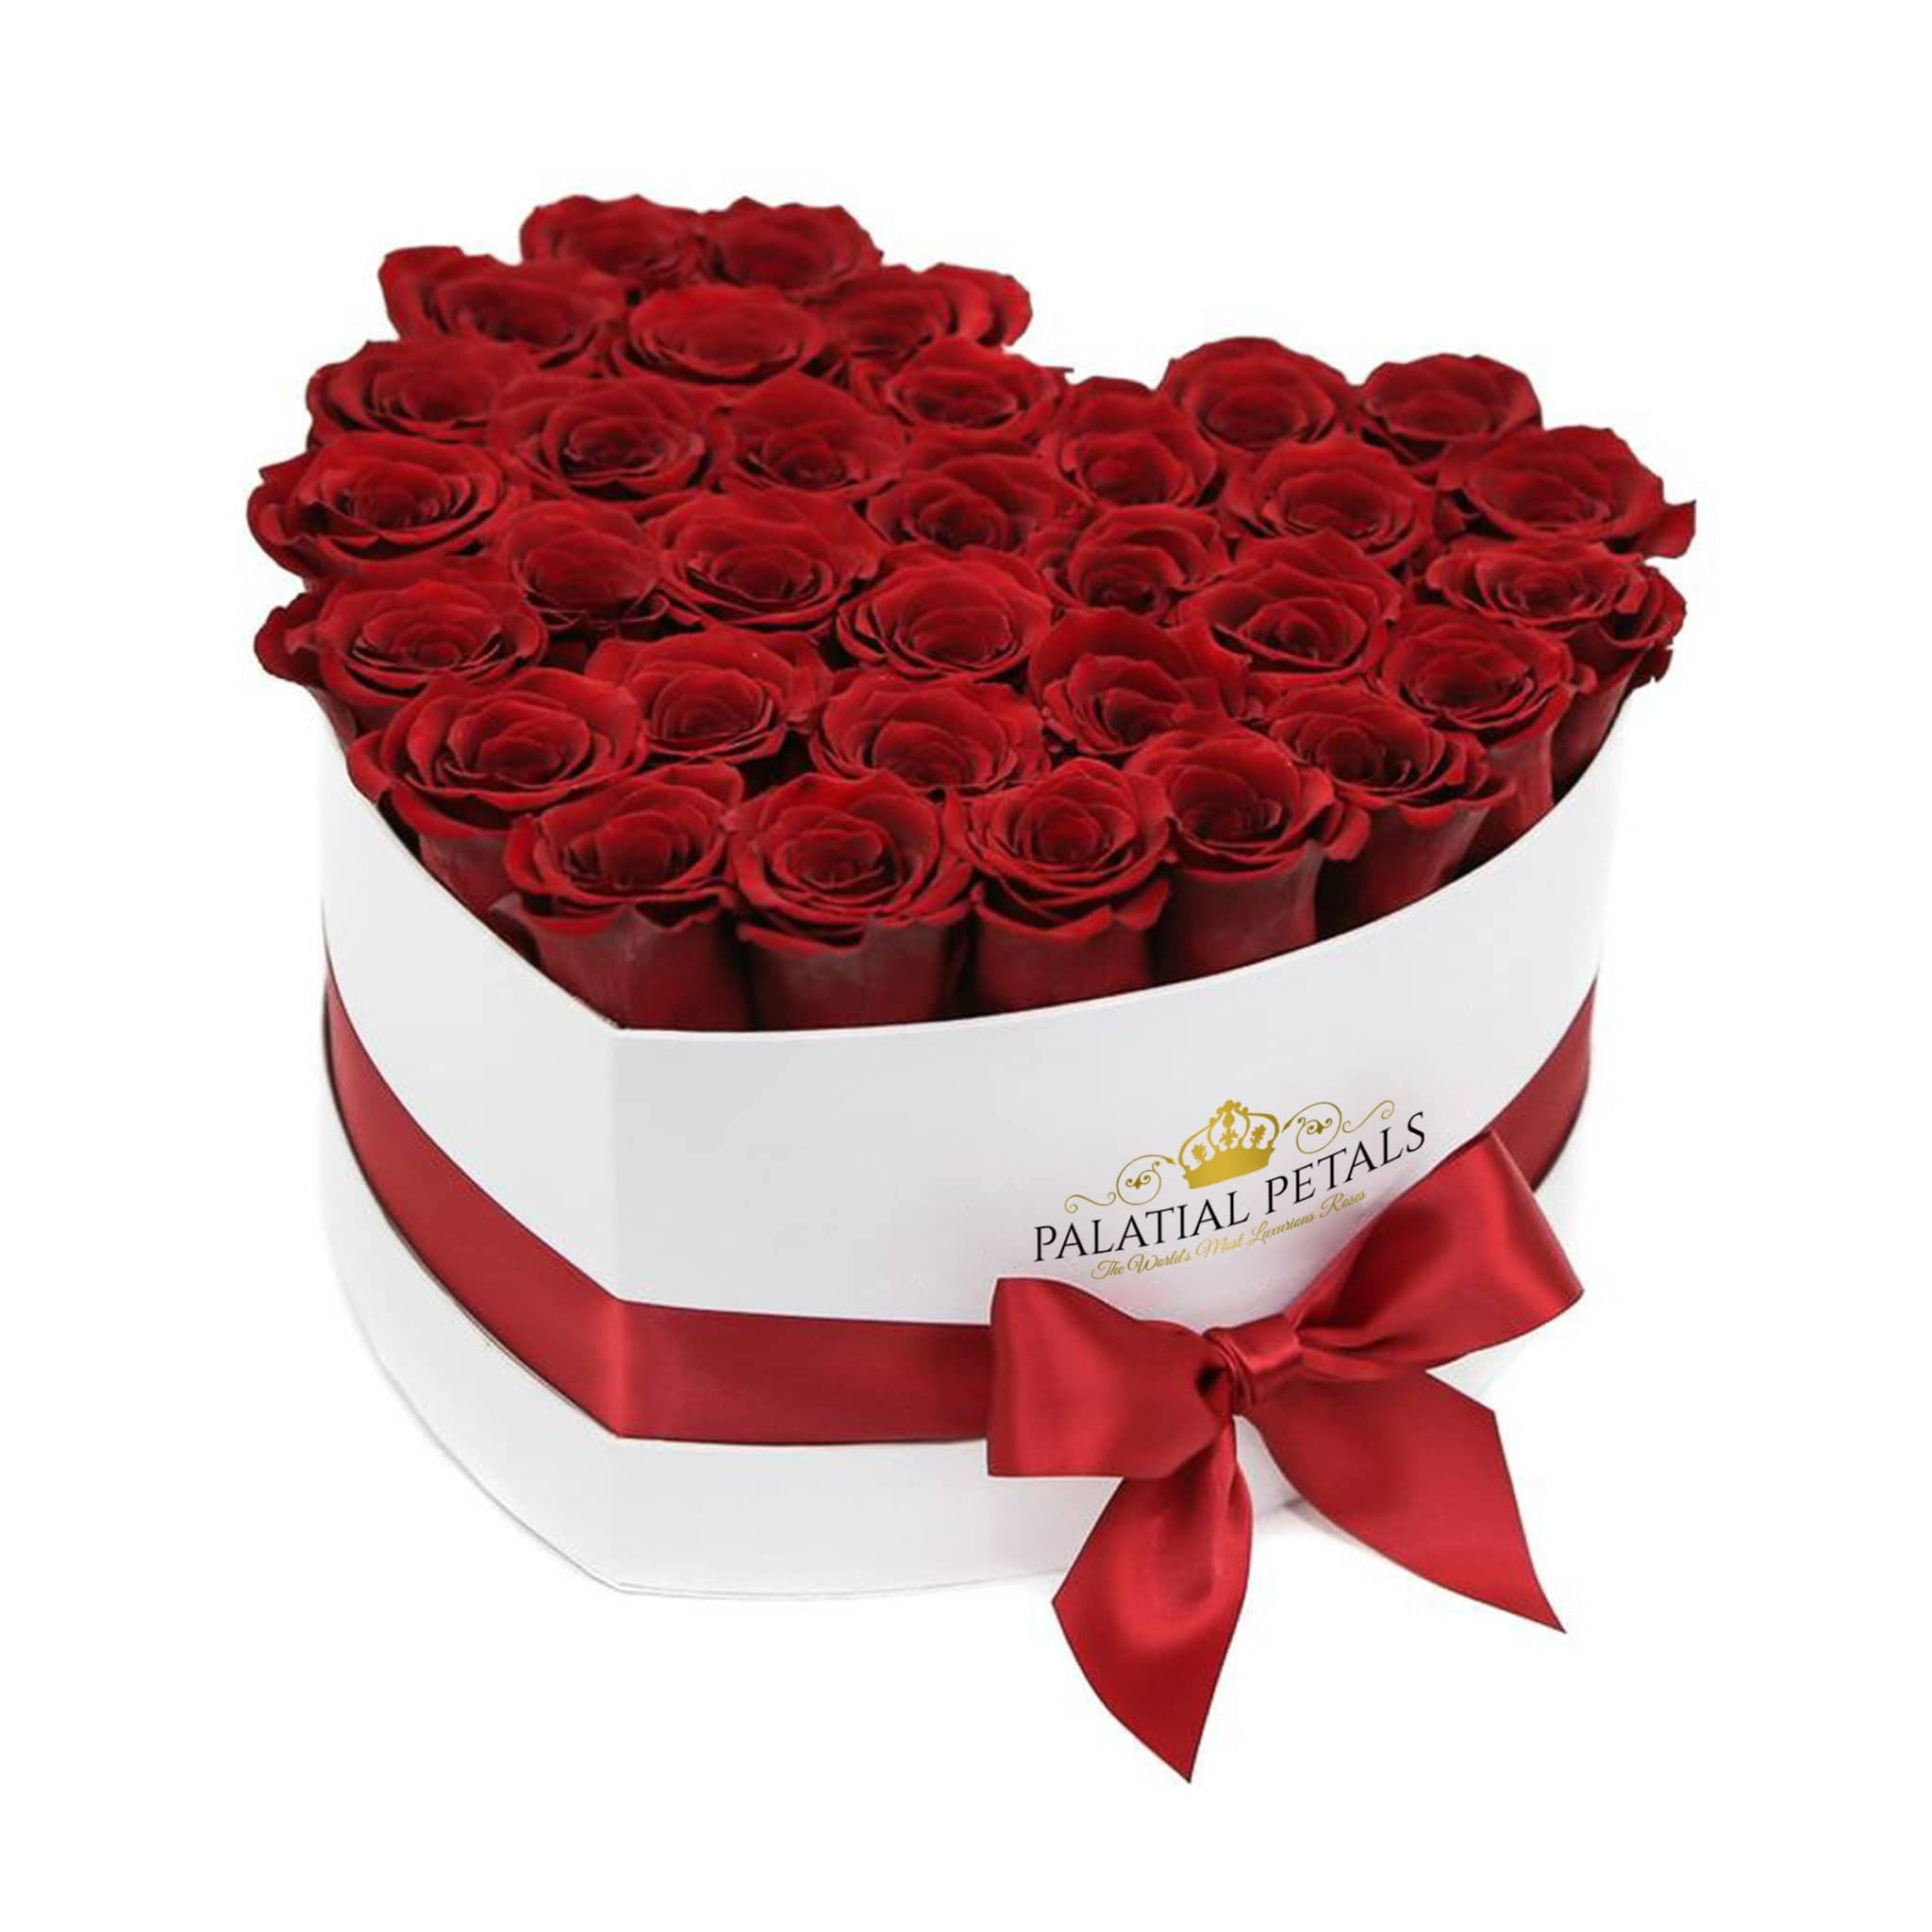 Red Roses That Last A Year - Love Heart Box